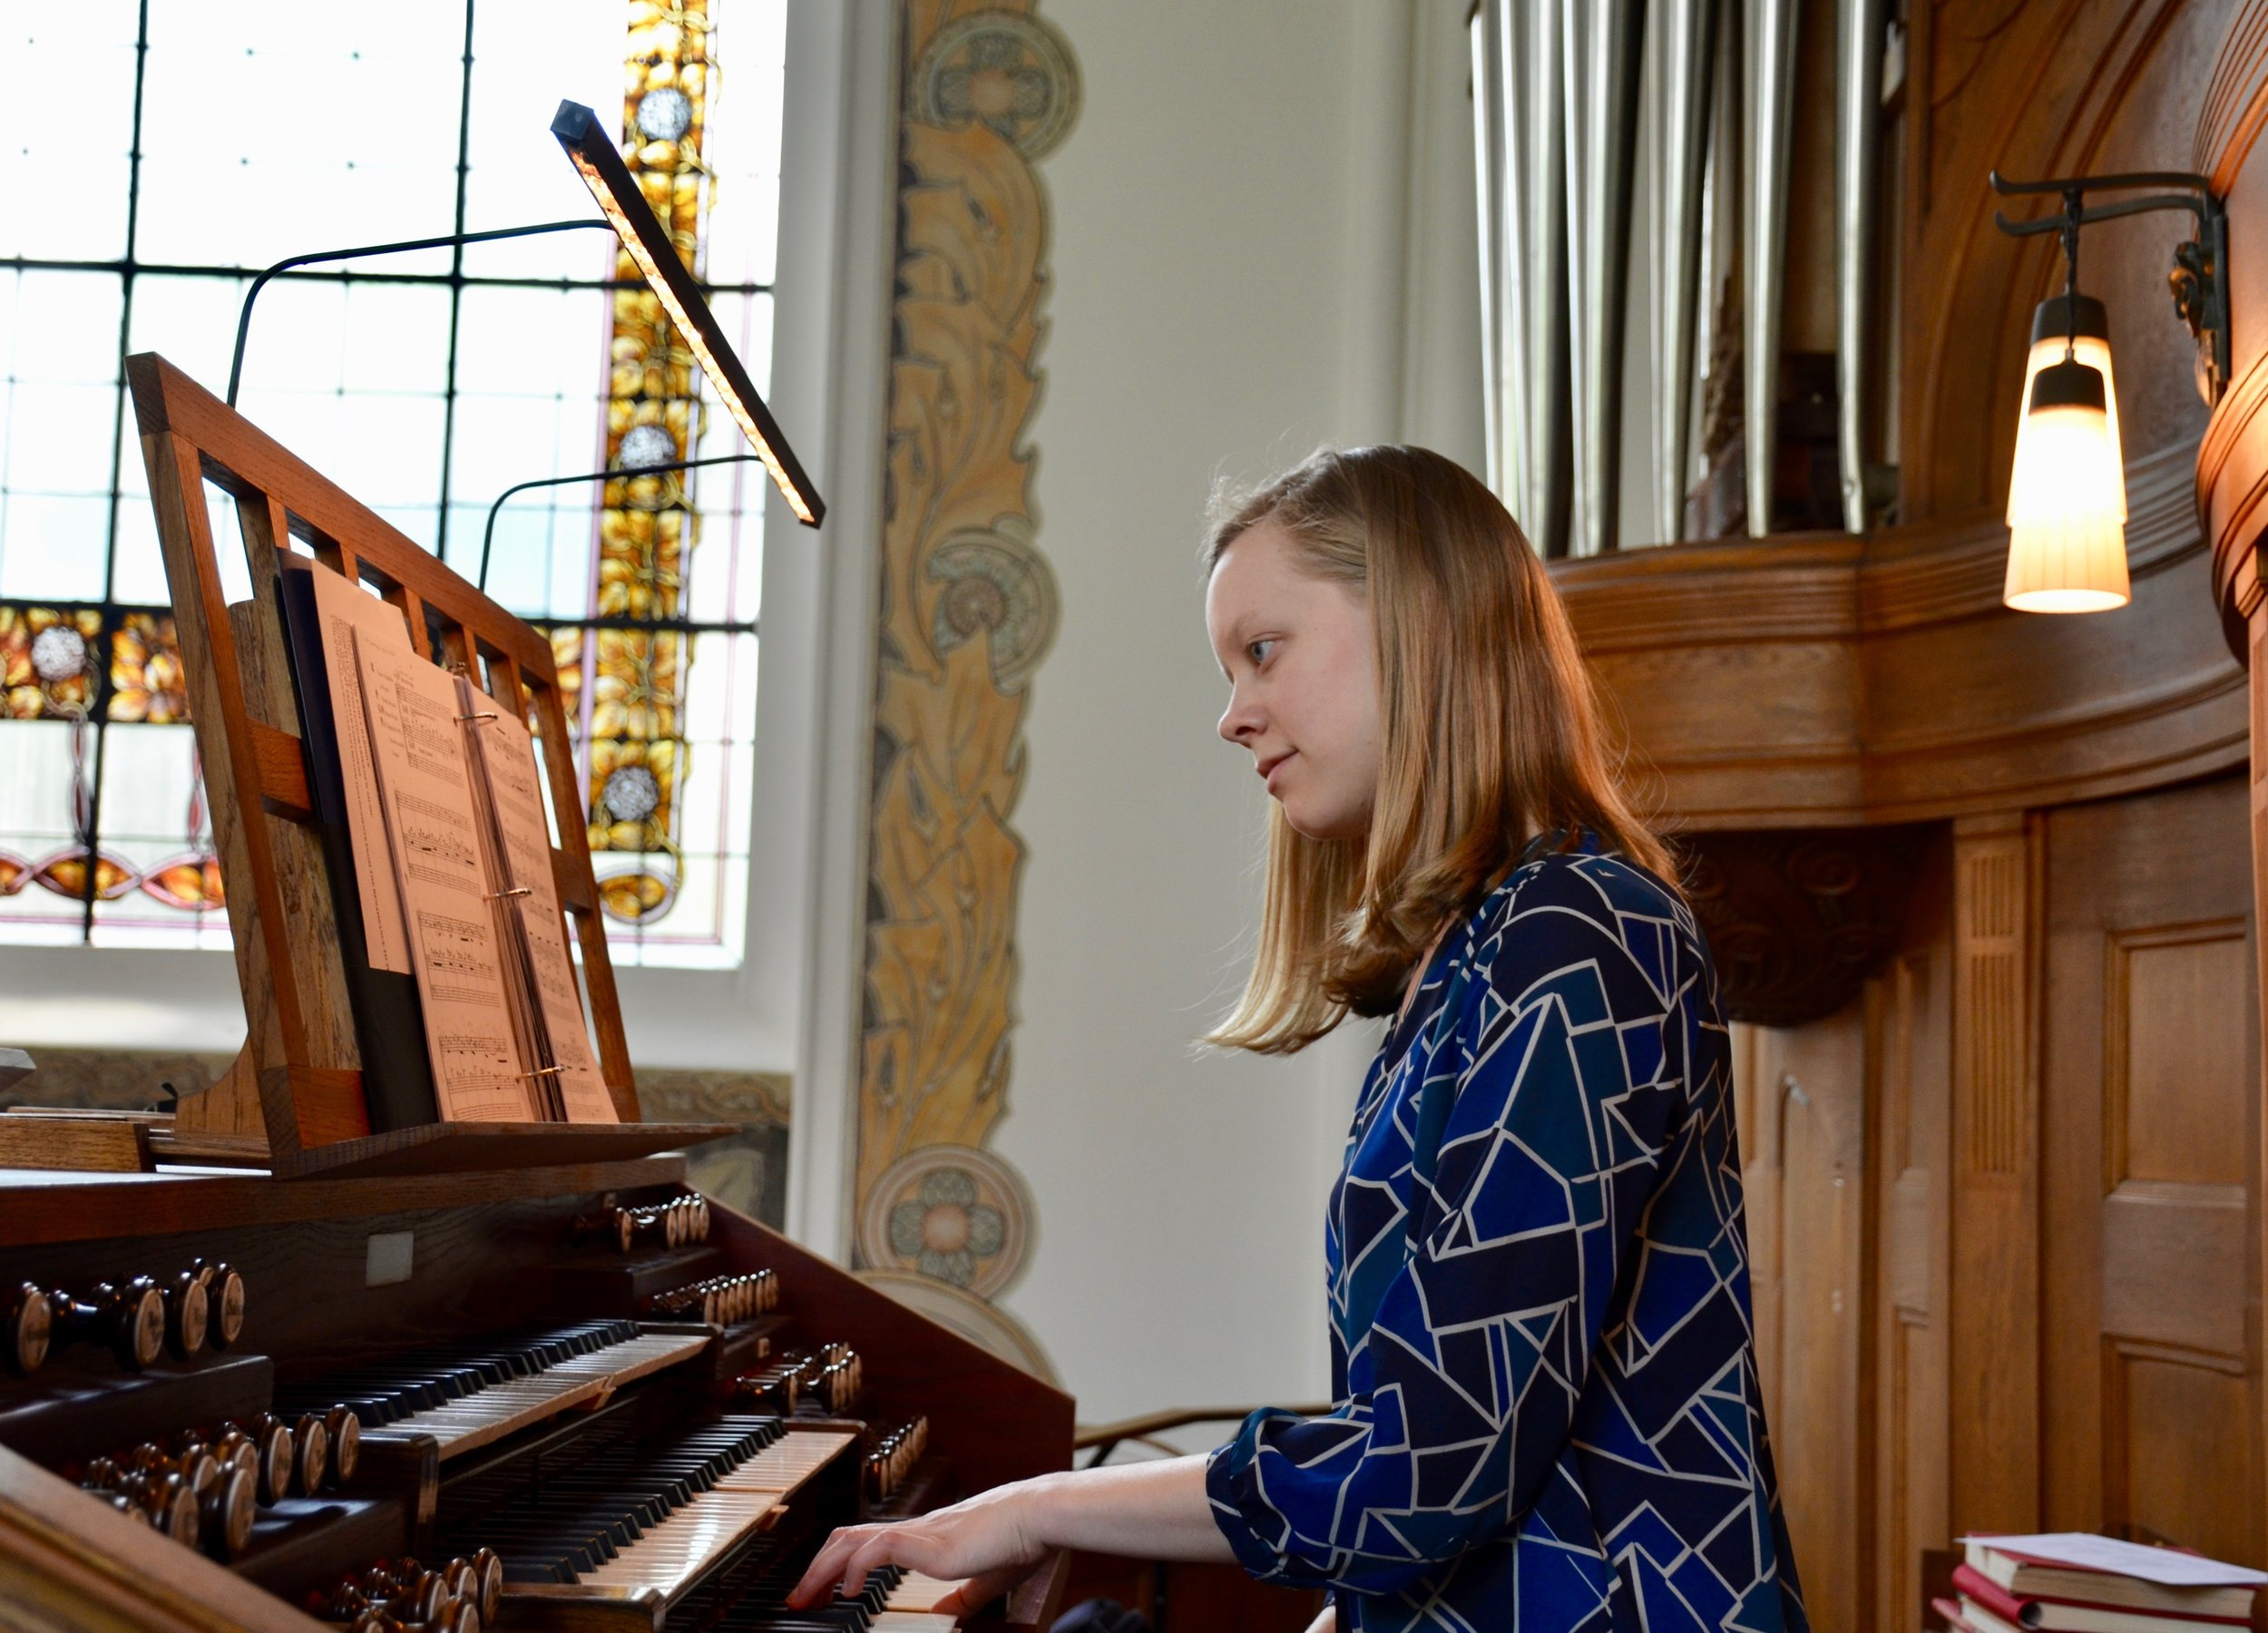 Laura Gullet plays the 1907 Åckerman & Lund organ in S:t Johannes kyrka, Malmö, Sweden.